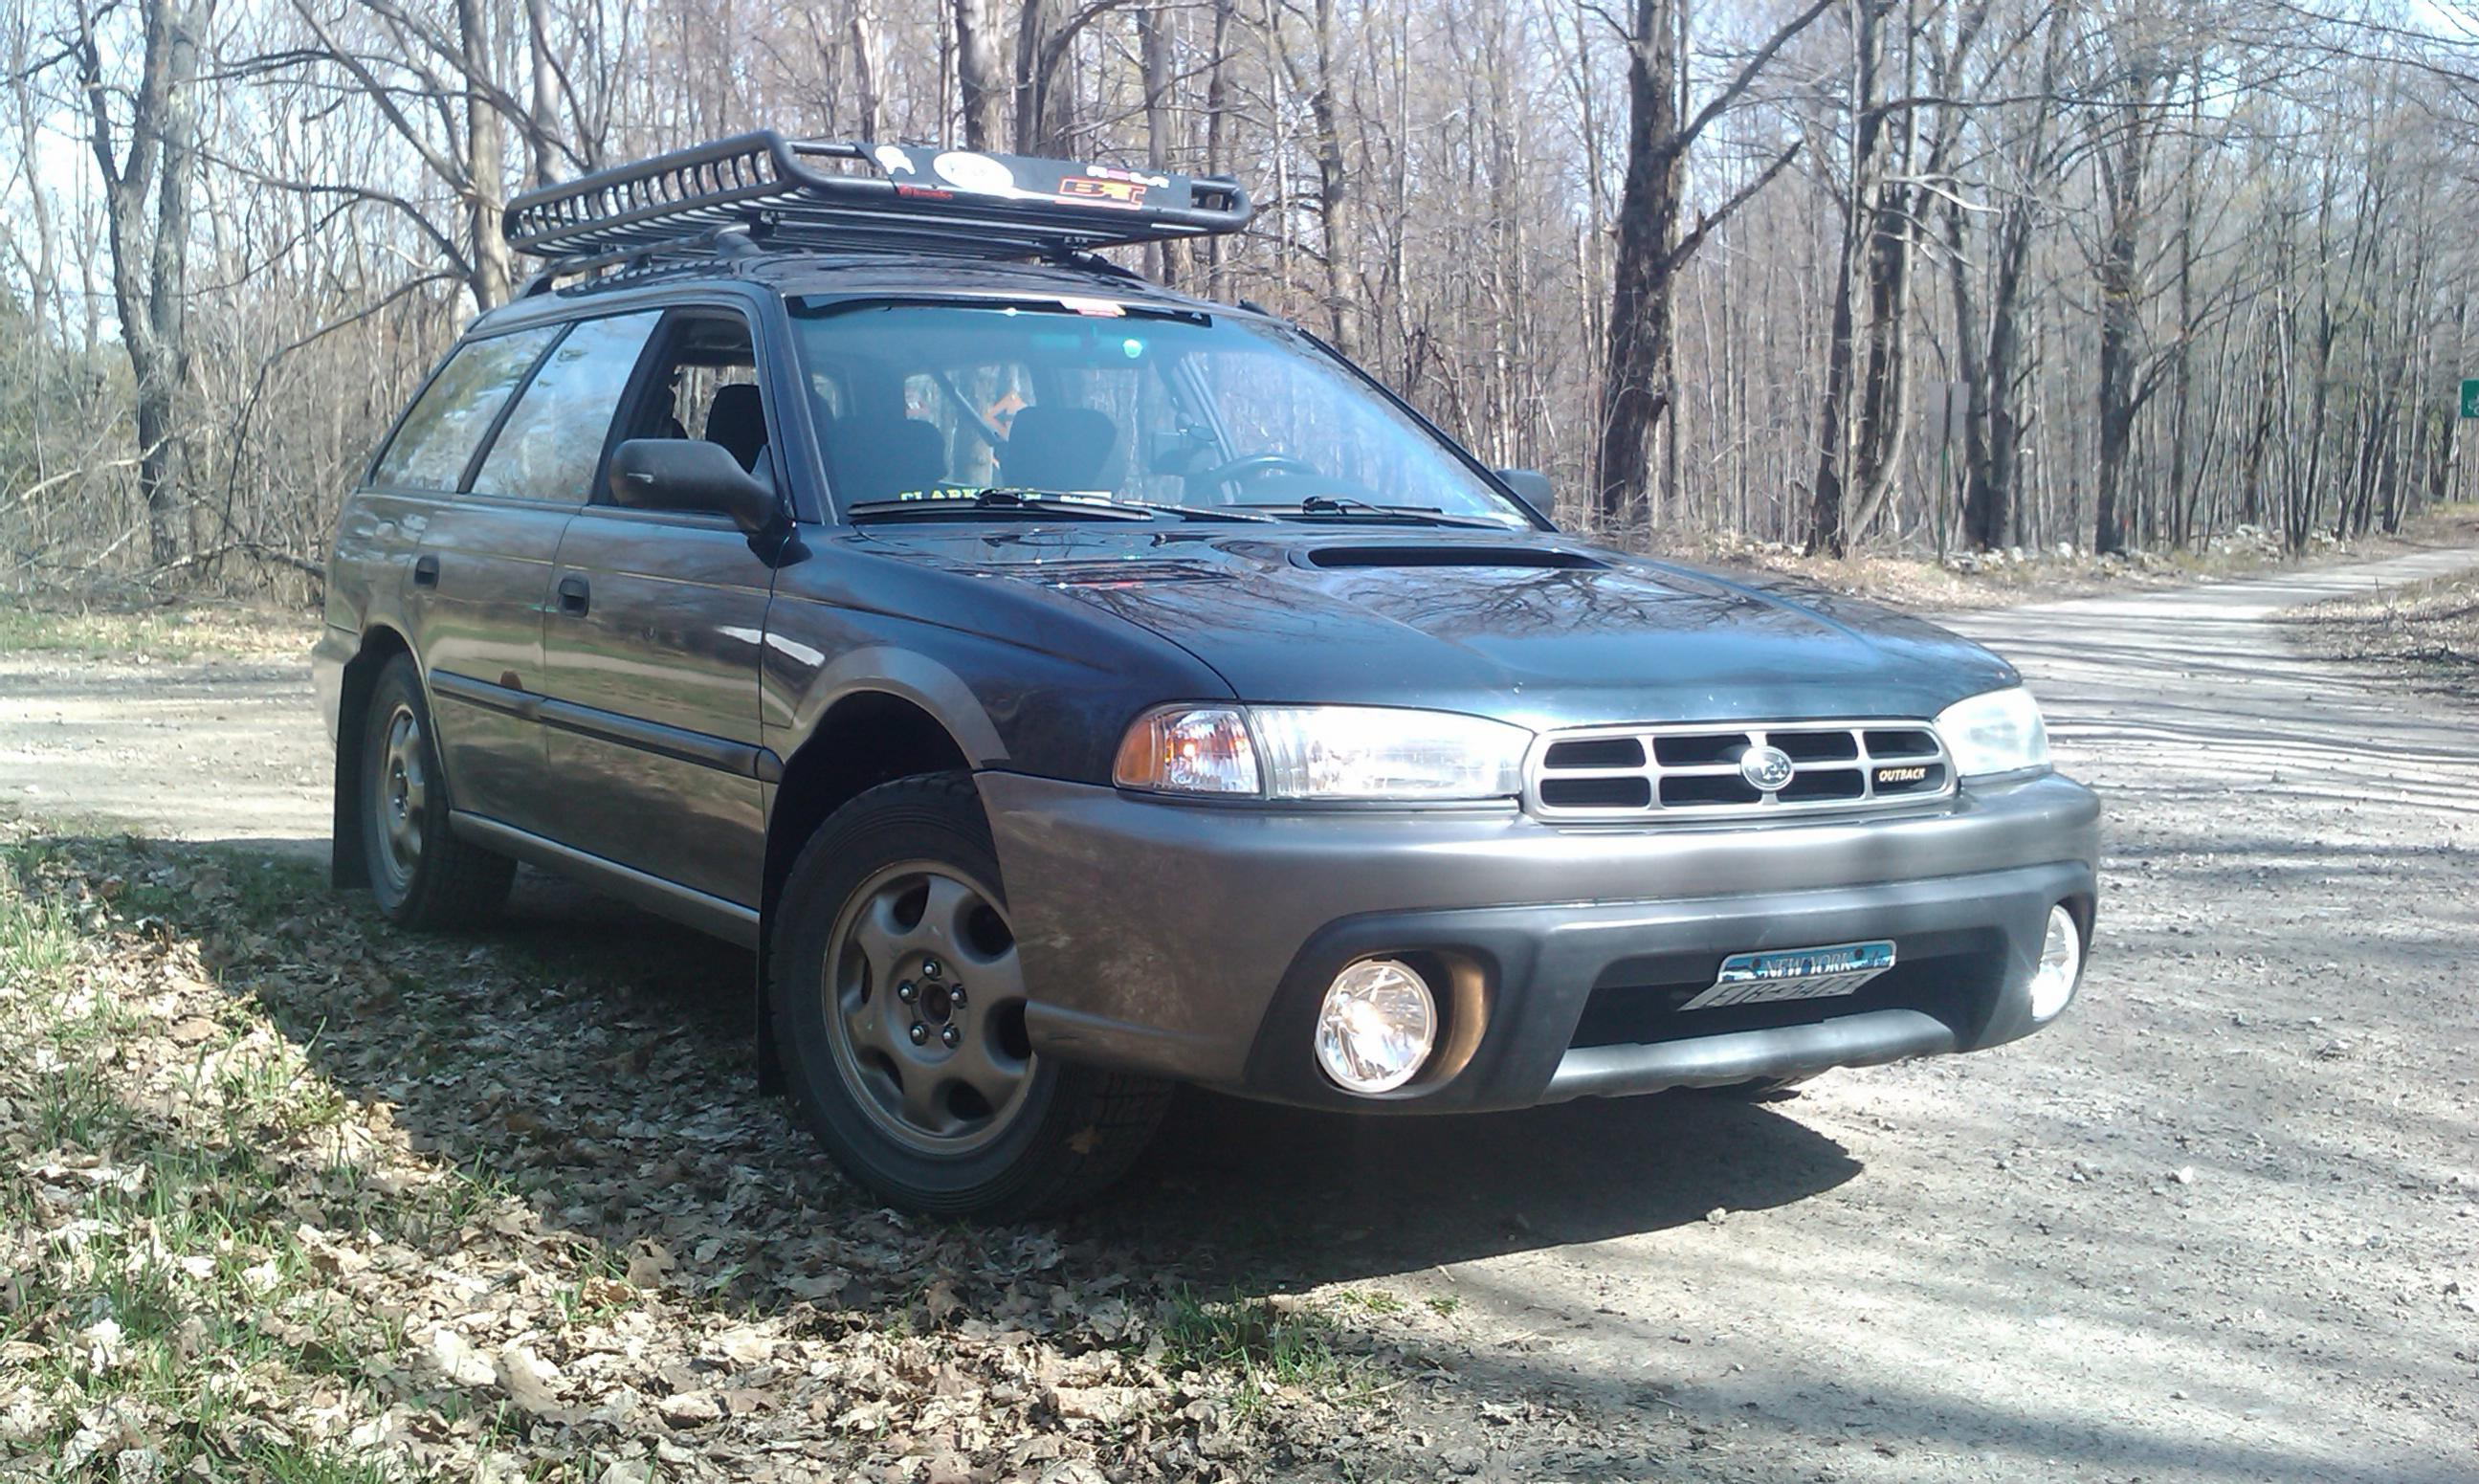 1998 Legacy Obw Build Thread Subaru Outback Forums 97 Headlight Wiring Diagram Click Image For Larger Version Name Imag0134 Views 13625 Size 6846